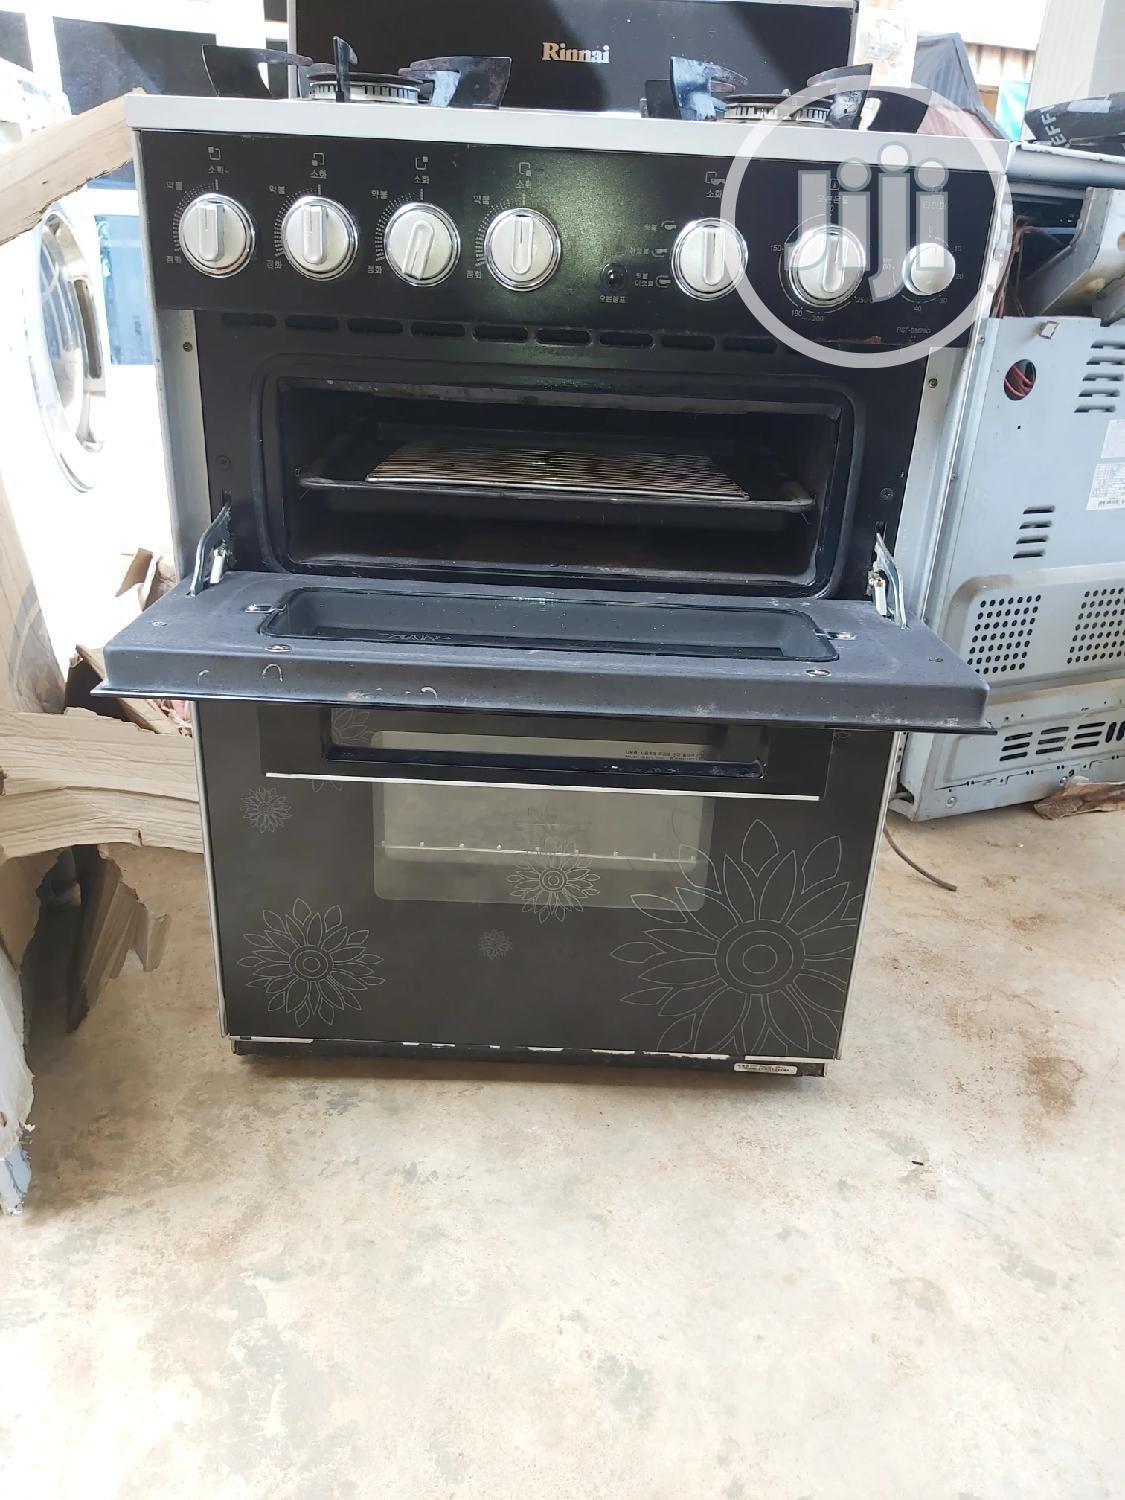 4 Burner Gas Cooker With Oven And Grill   Kitchen Appliances for sale in Ikorodu, Lagos State, Nigeria